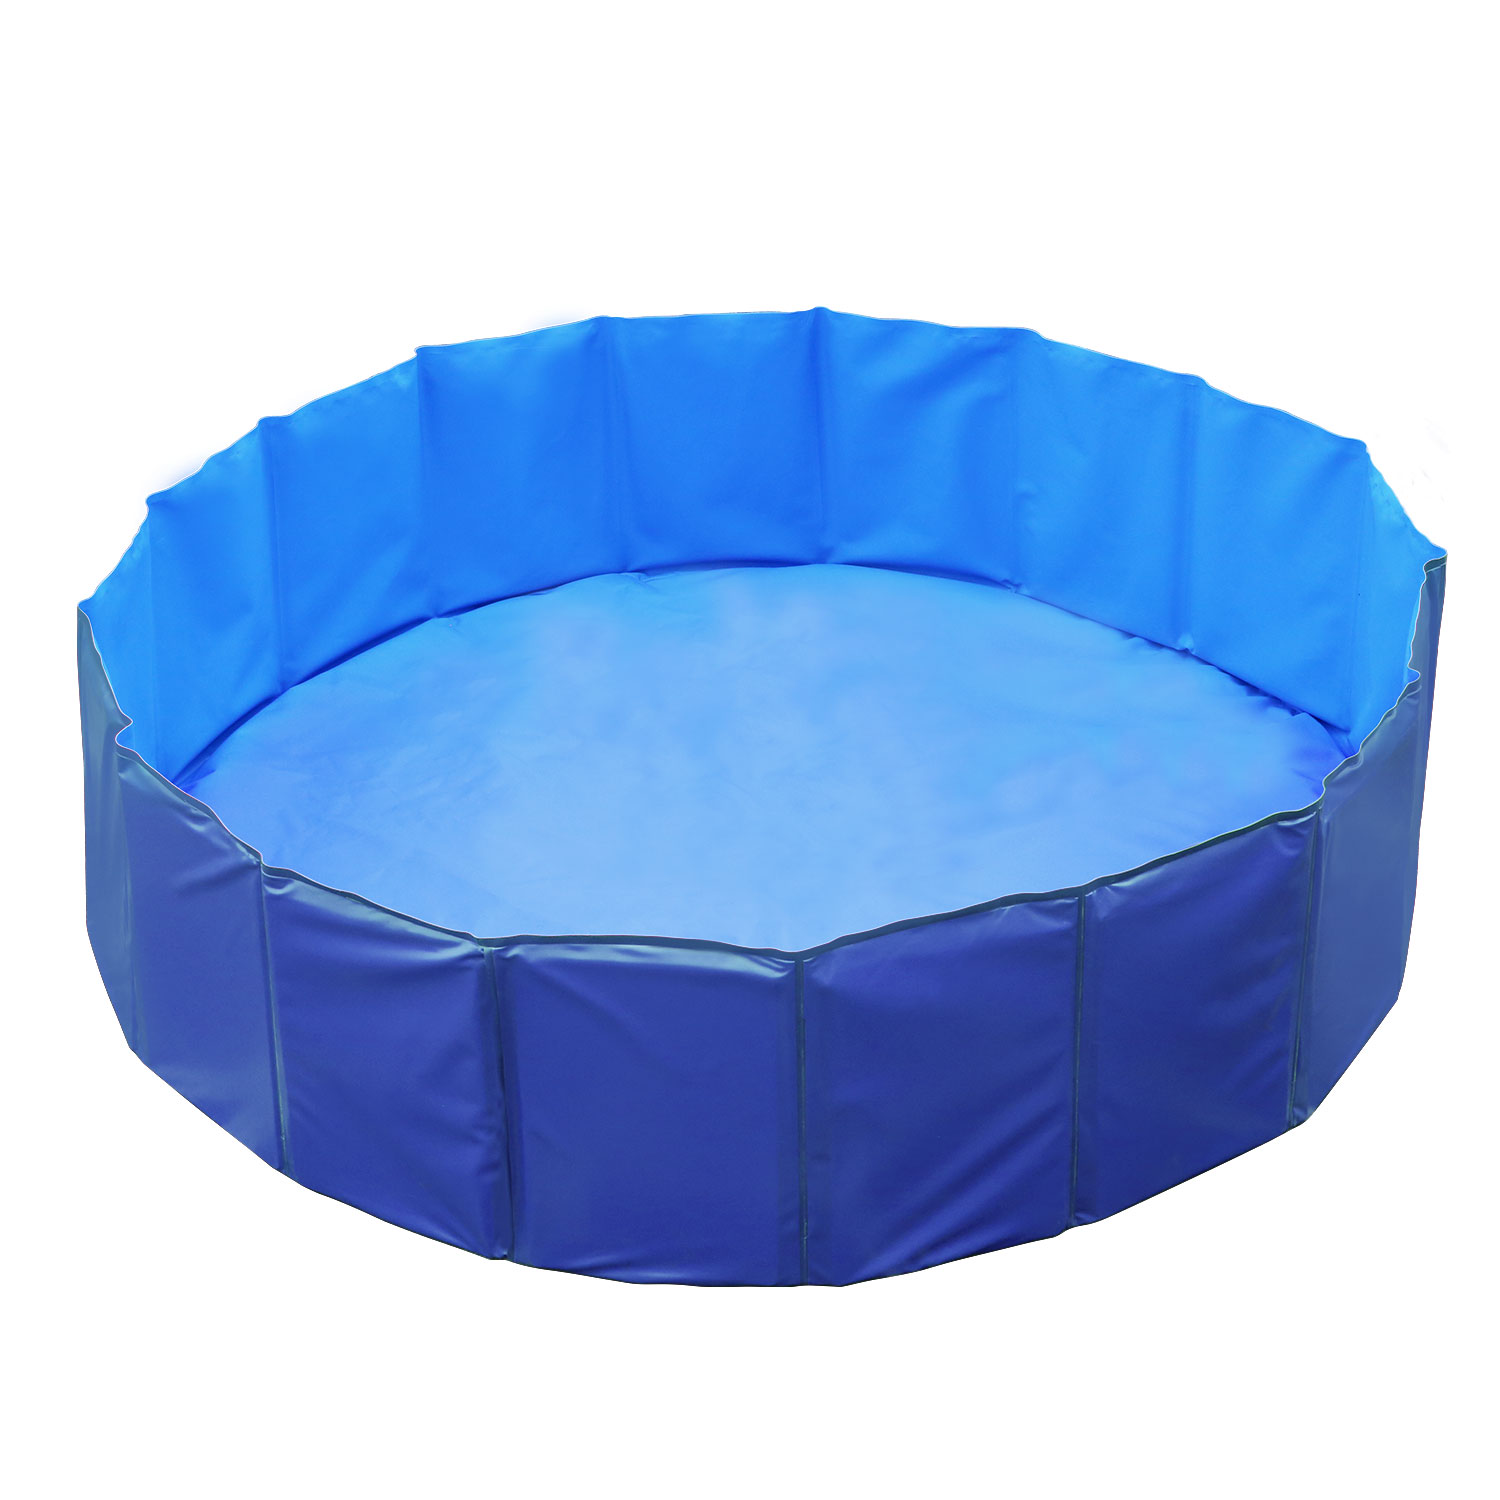 Foldable Portable Collapsible Large Dog Pet Bathing Swimming Pool